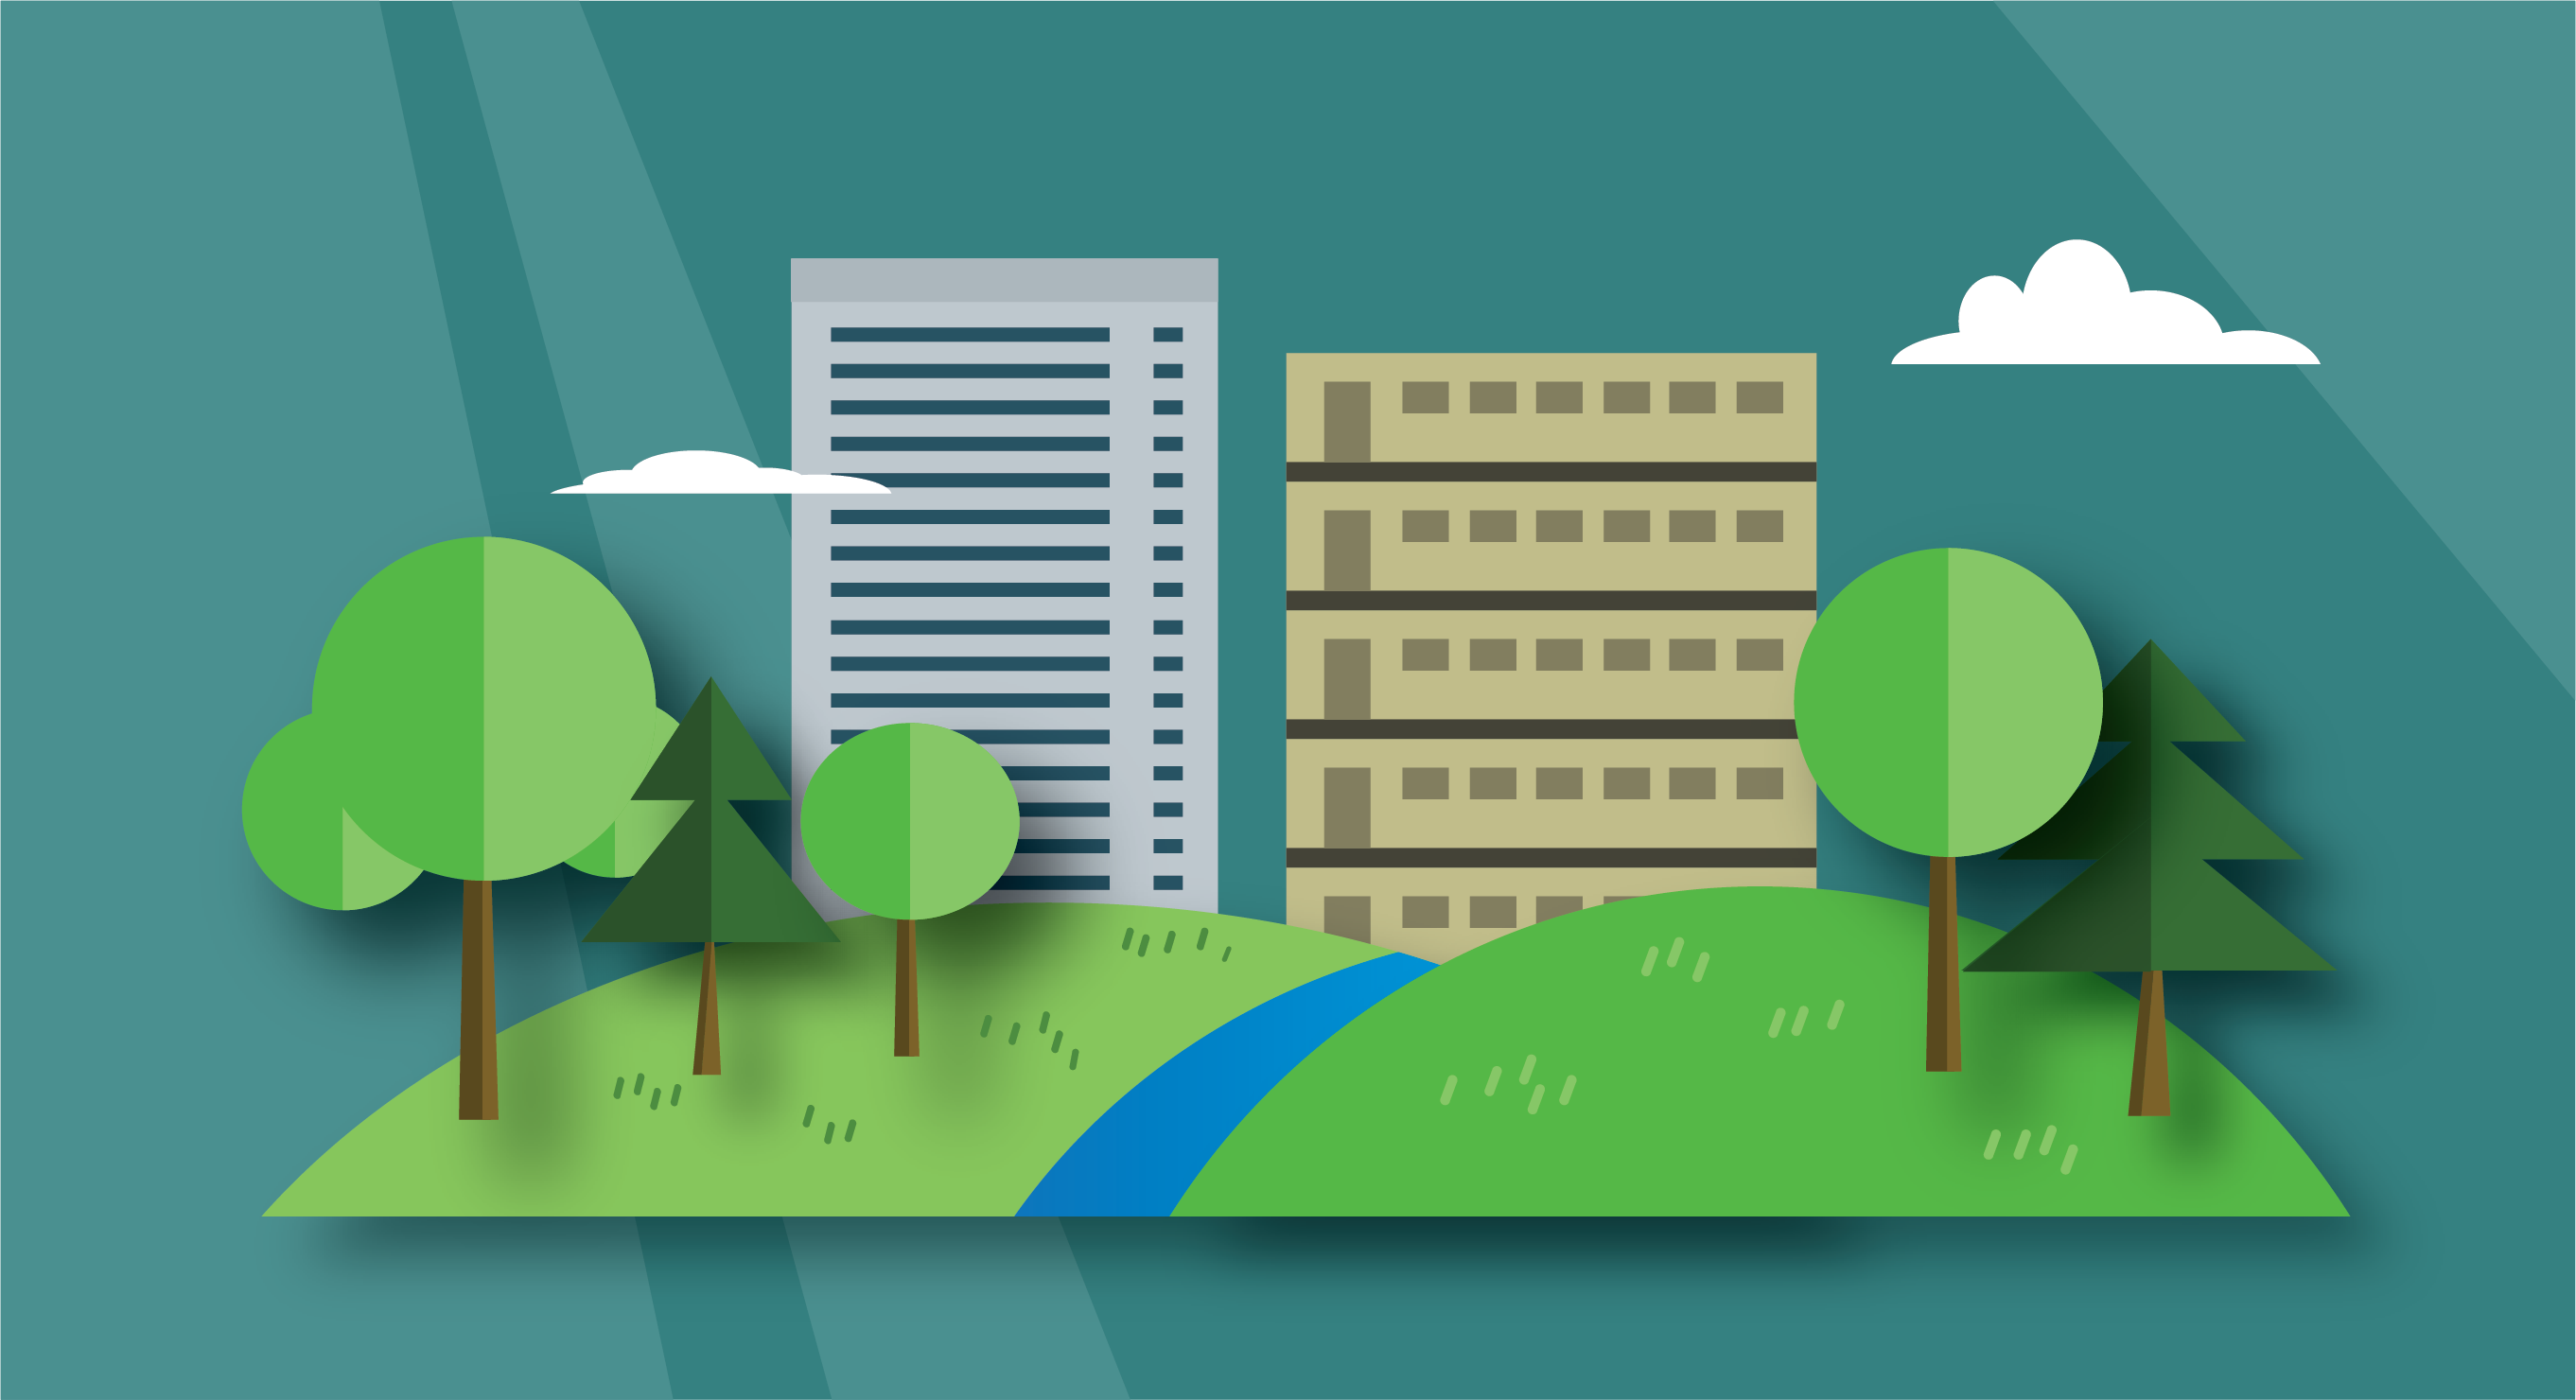 Buildings with landscape graphic